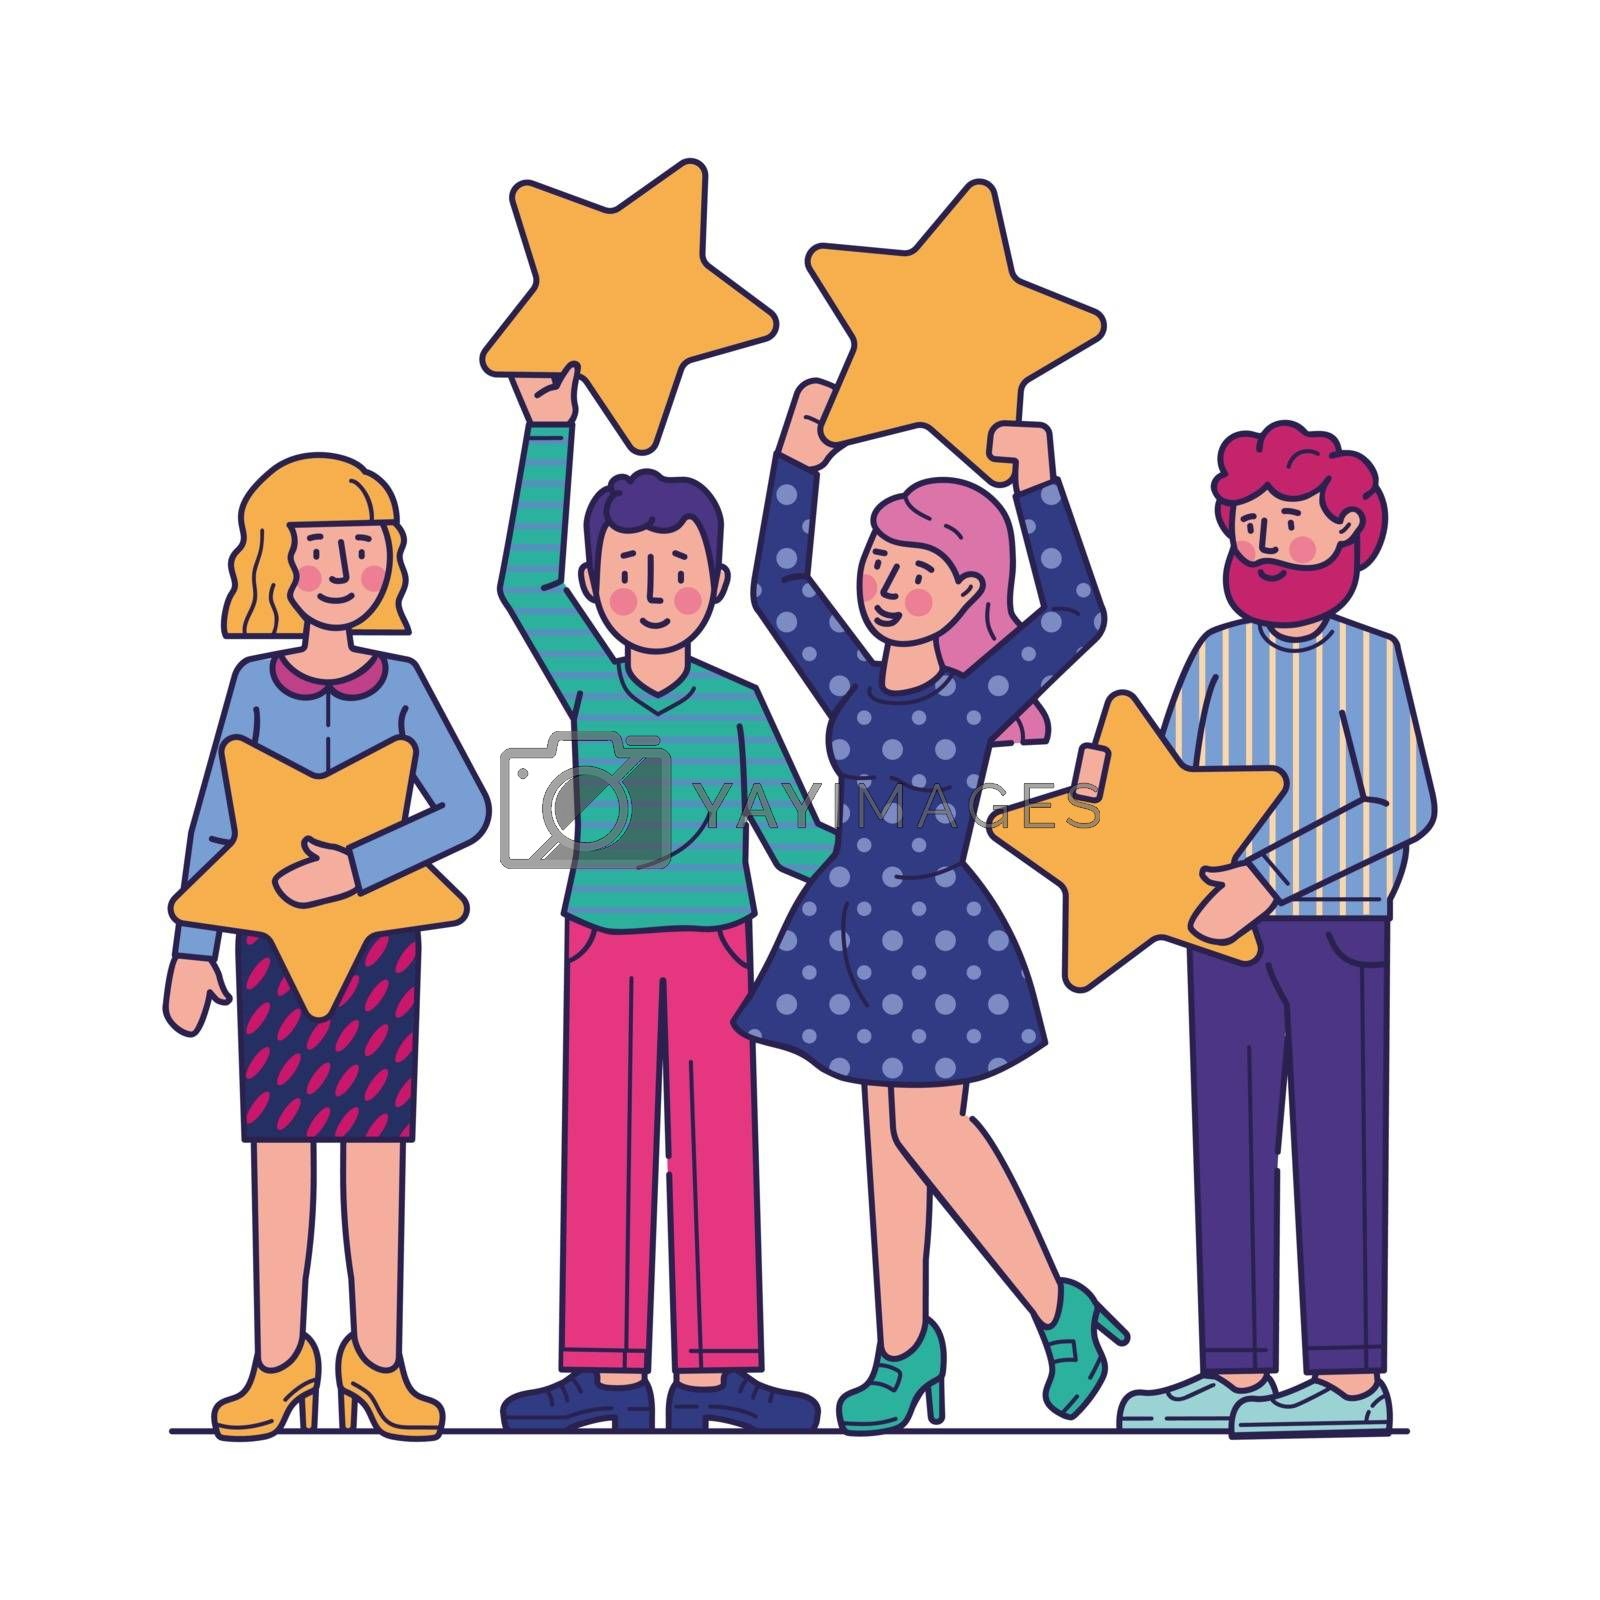 Customer review evaluation flat vector illustration. Quality rating with stars. Consumer feedback and satisfaction concept. People holding stars over heads.